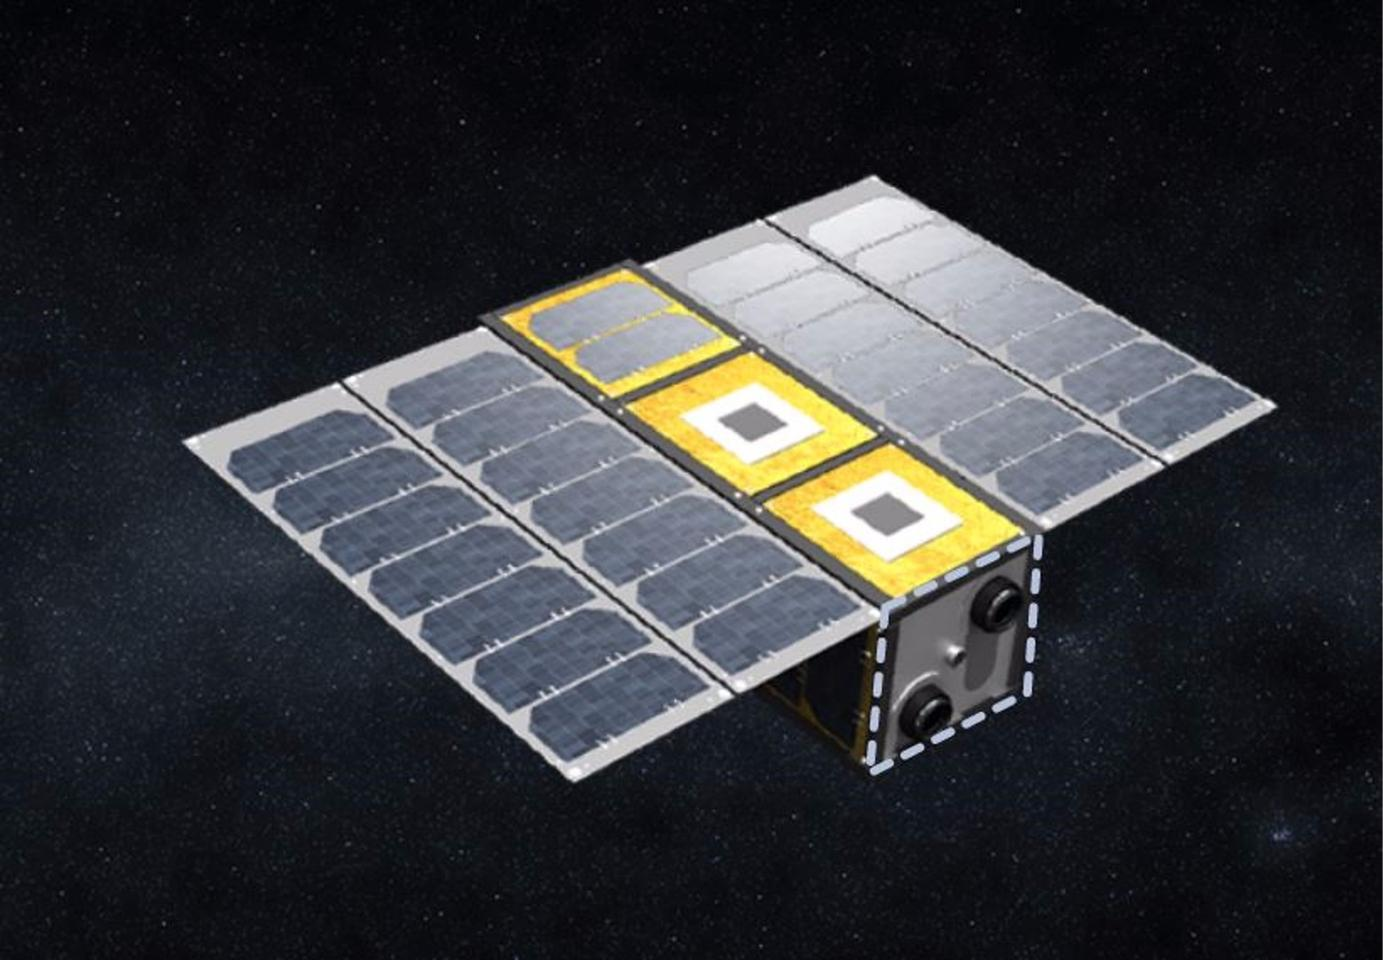 Prospector-X, a technology demonstrator satellite, is the first project of the DSI/Luxembourg partnership